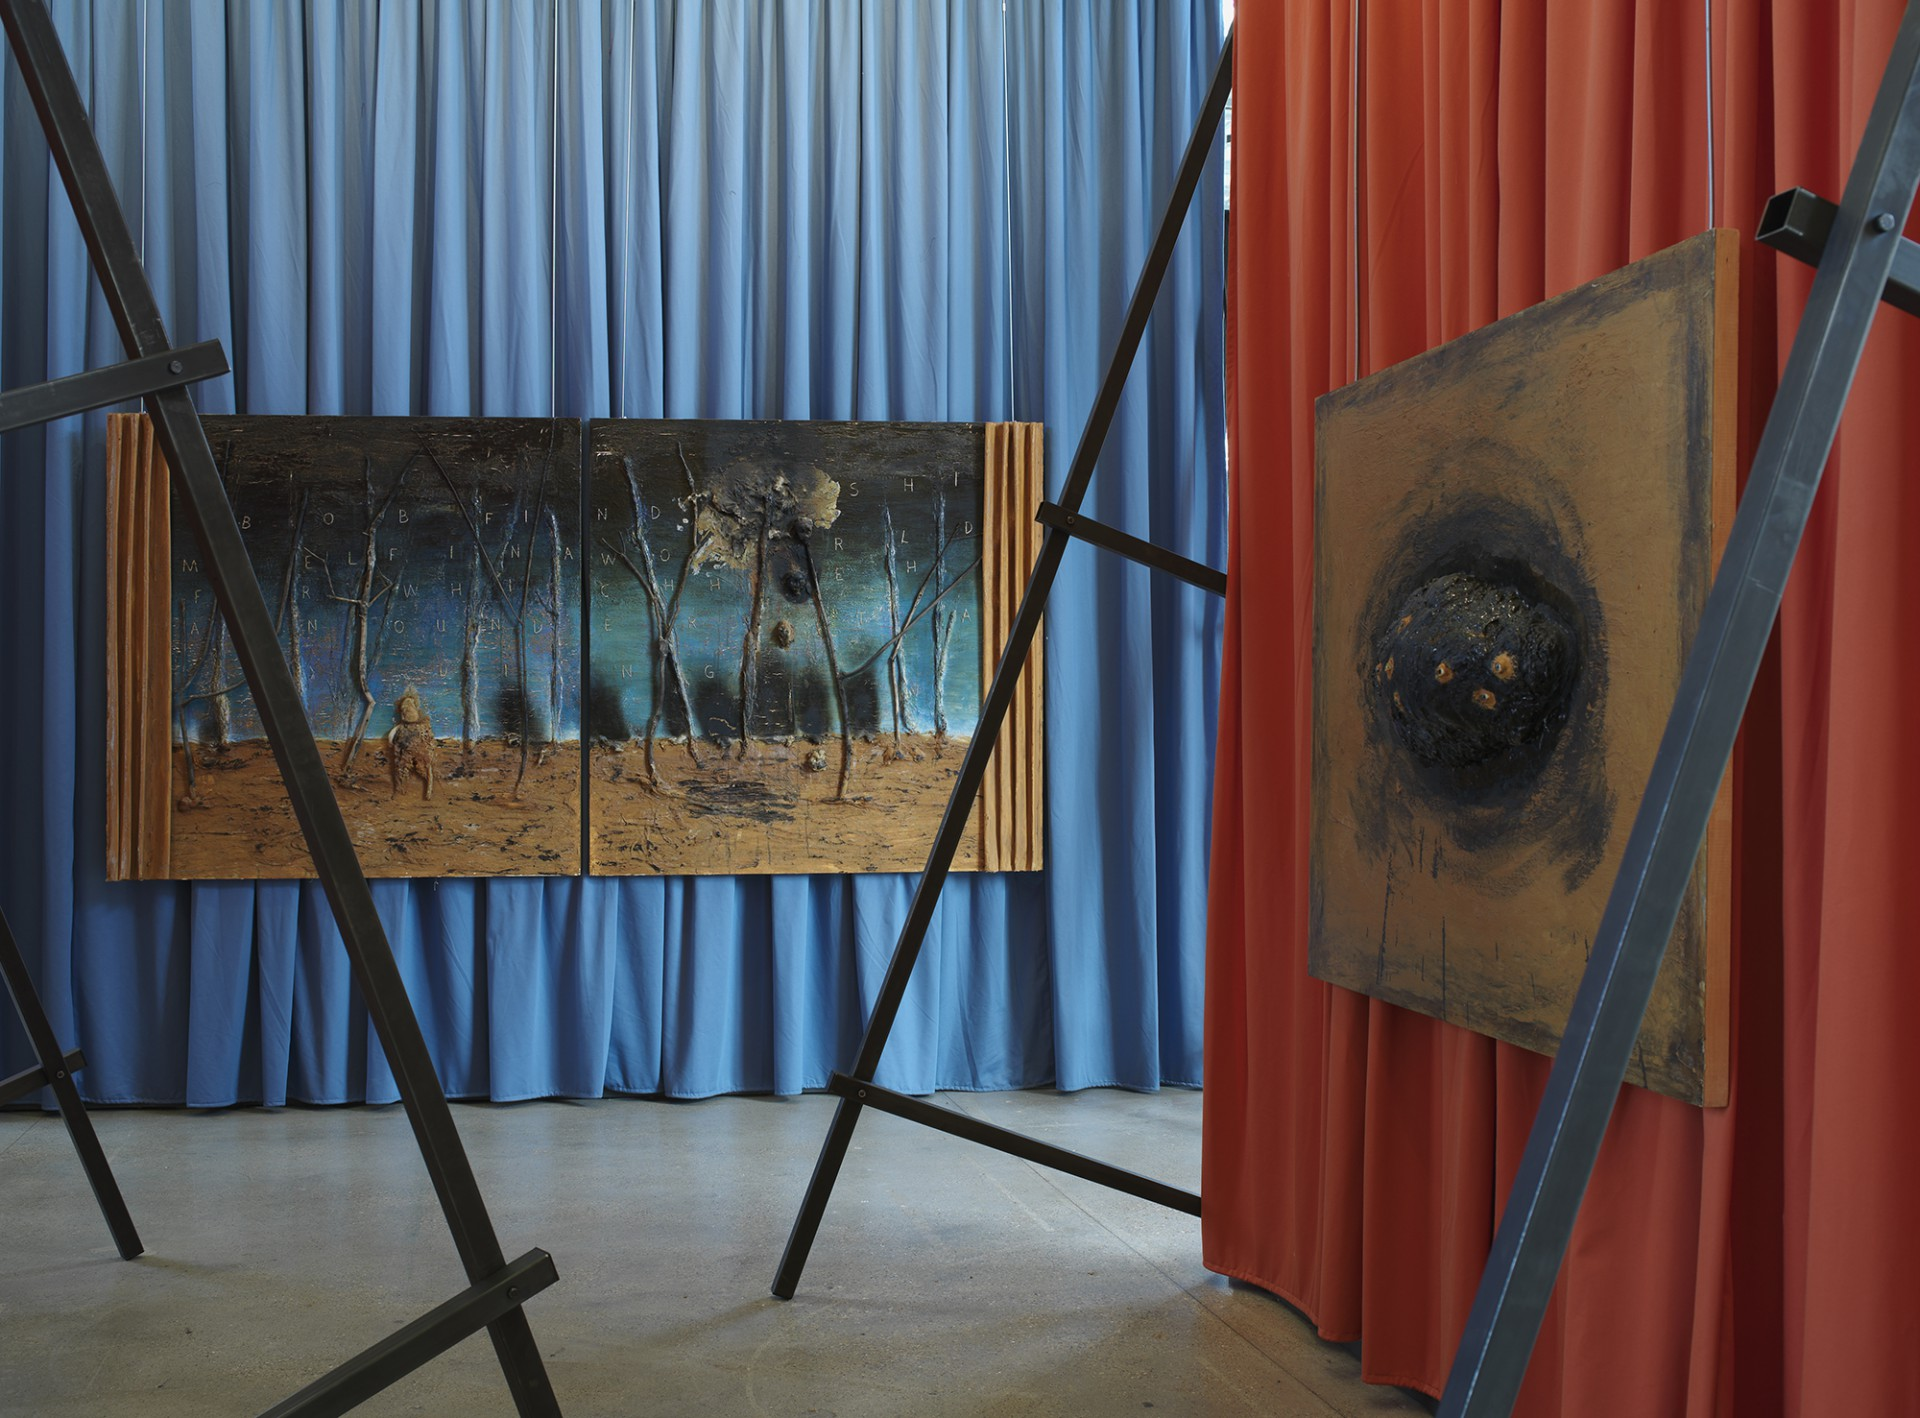 Patrick Gries David Lynch<br/>Fondation Cartier pour l&#8217;art contemporain